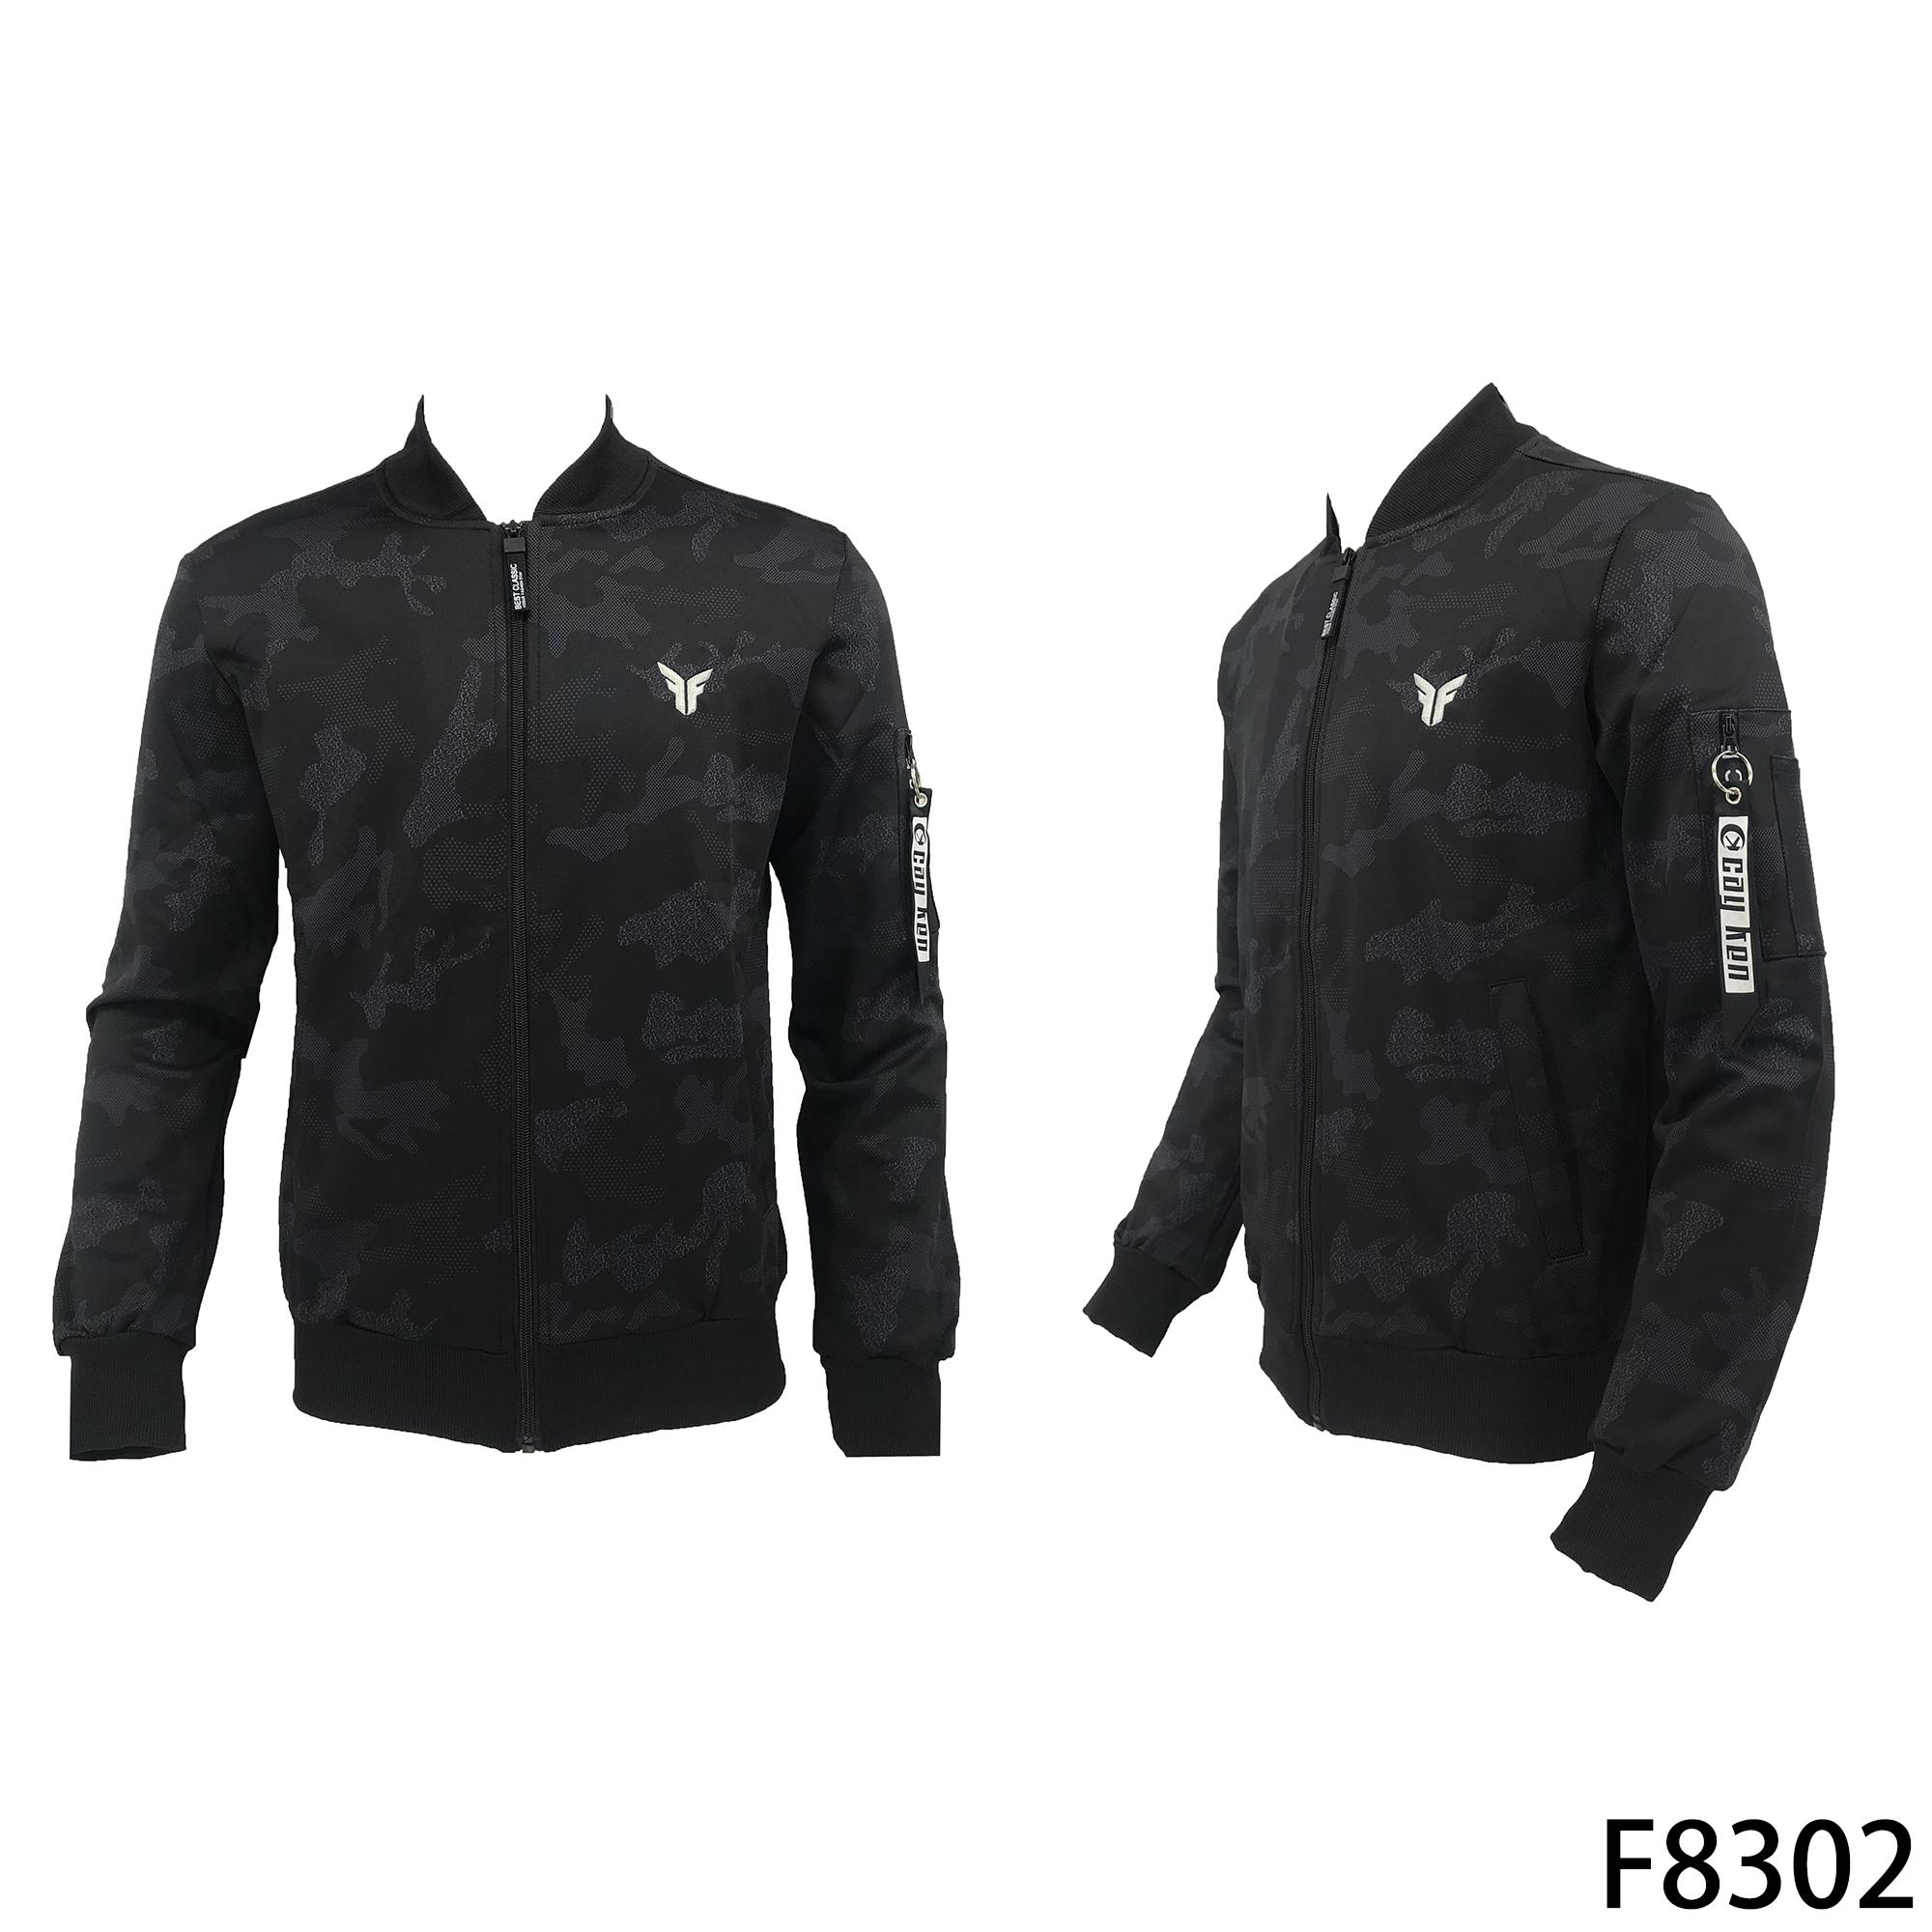 Jacket For Men High Grade Quality Ff F8302 By Cmb Merchandising.